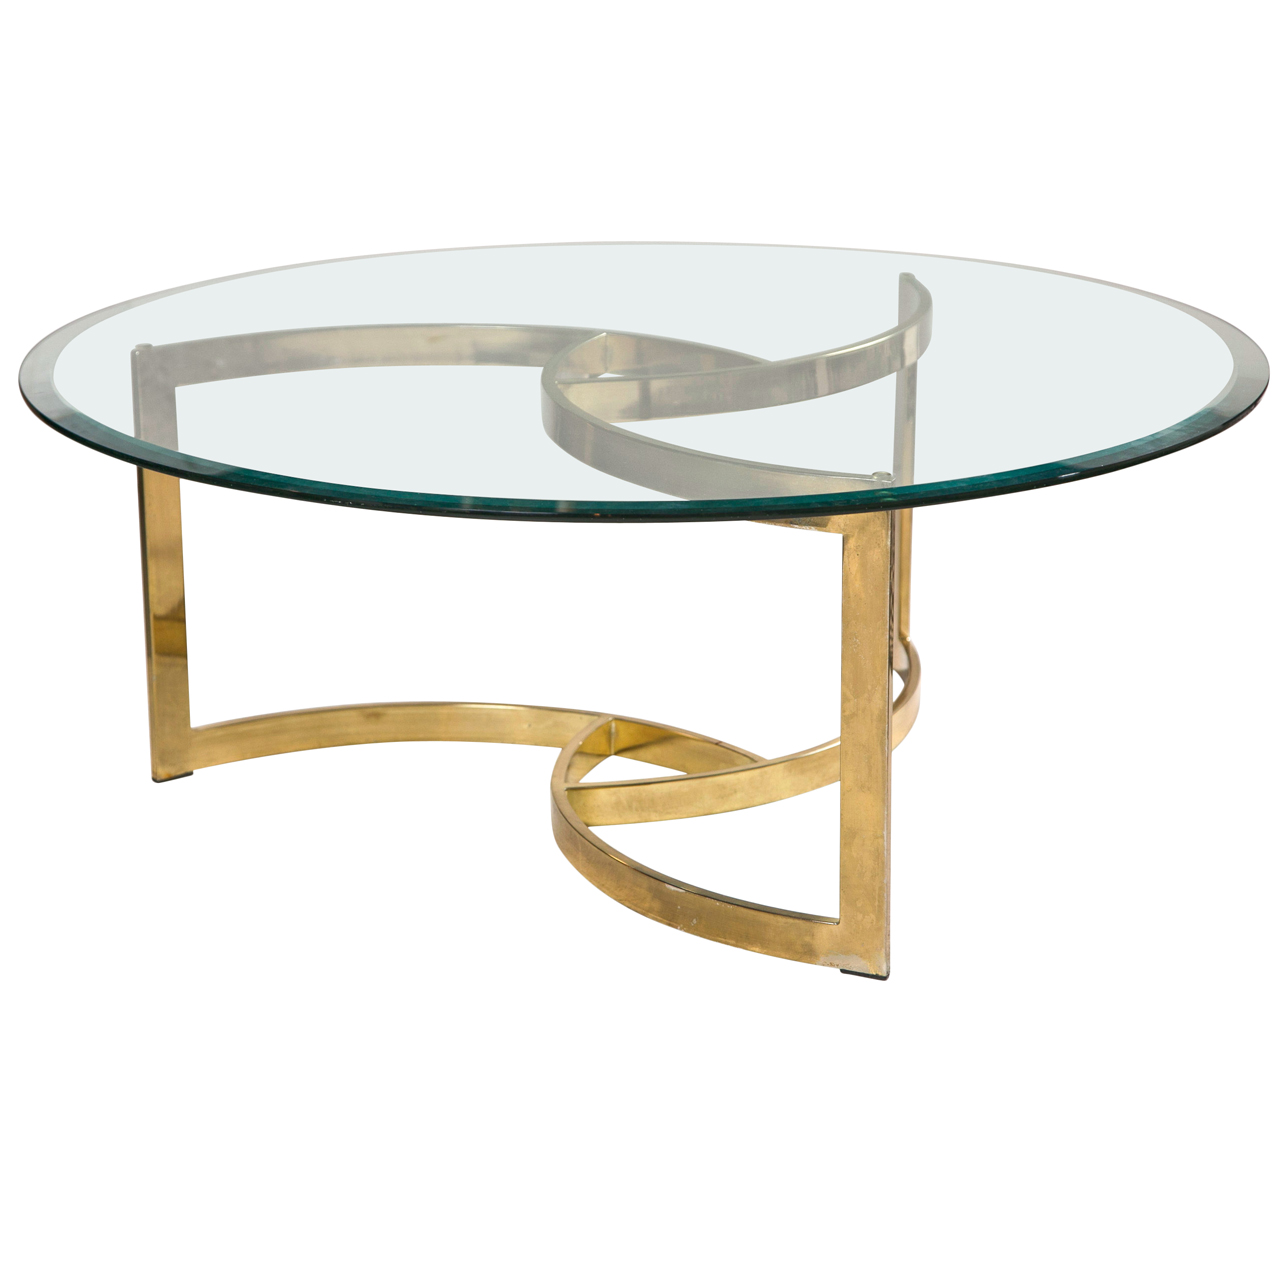 brass-coffee-tables-glass-top-rou-rass-coffee-table-brass-coffee-table-base-round-brass-and-glass-tables (Image 2 of 10)